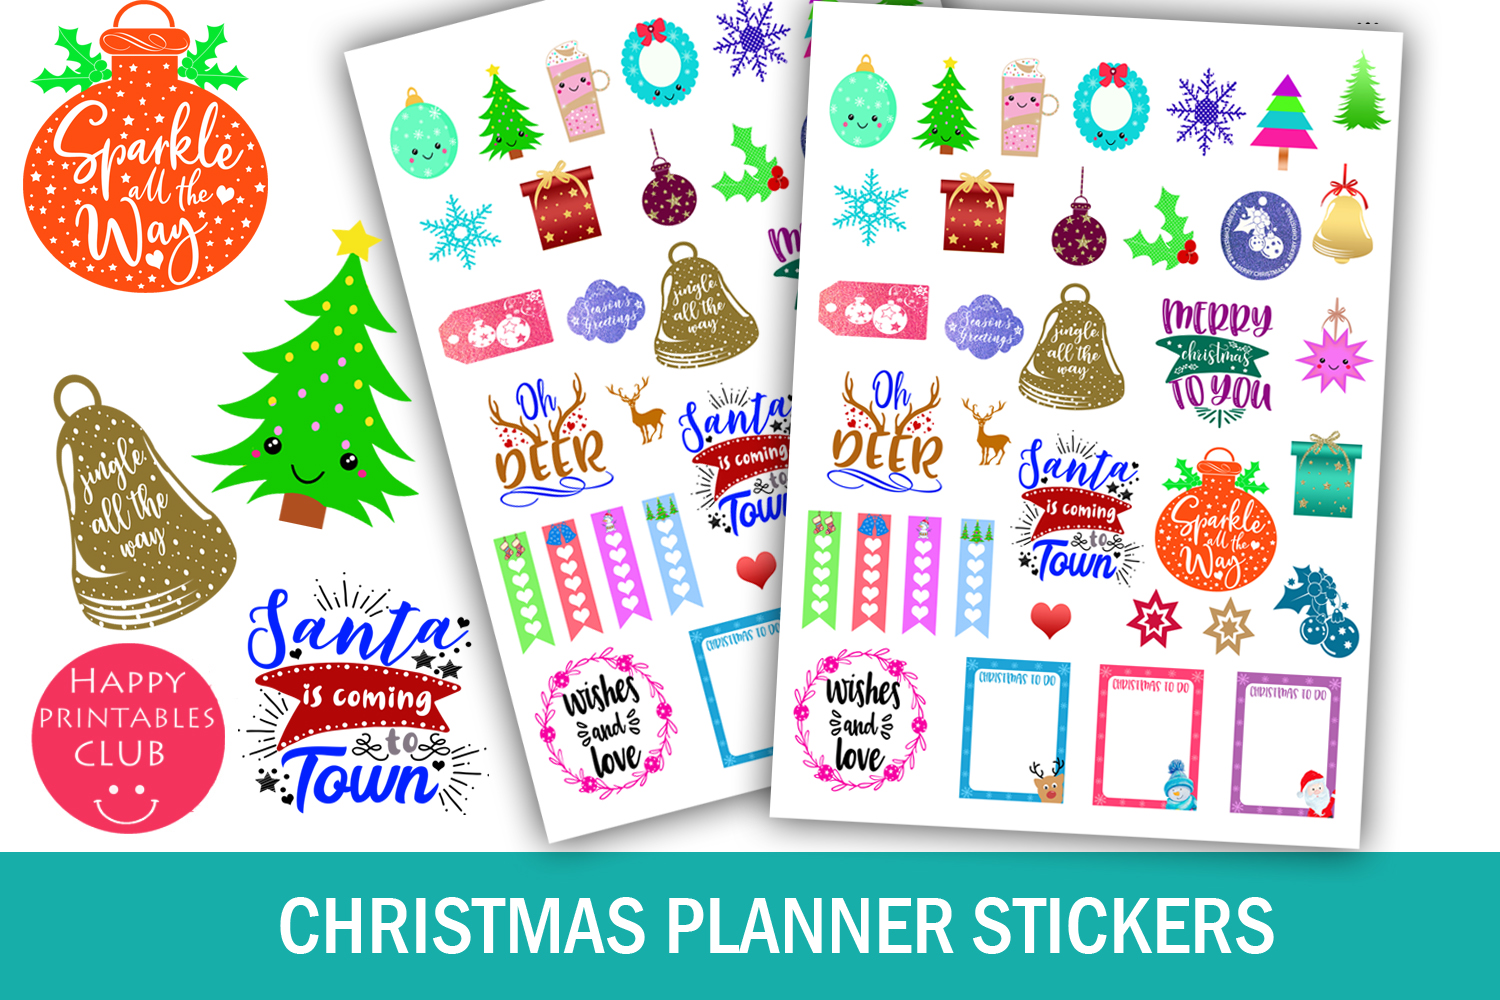 Download Free Christmas Planner Stickers Holidays Graphic By Happy Printables for Cricut Explore, Silhouette and other cutting machines.